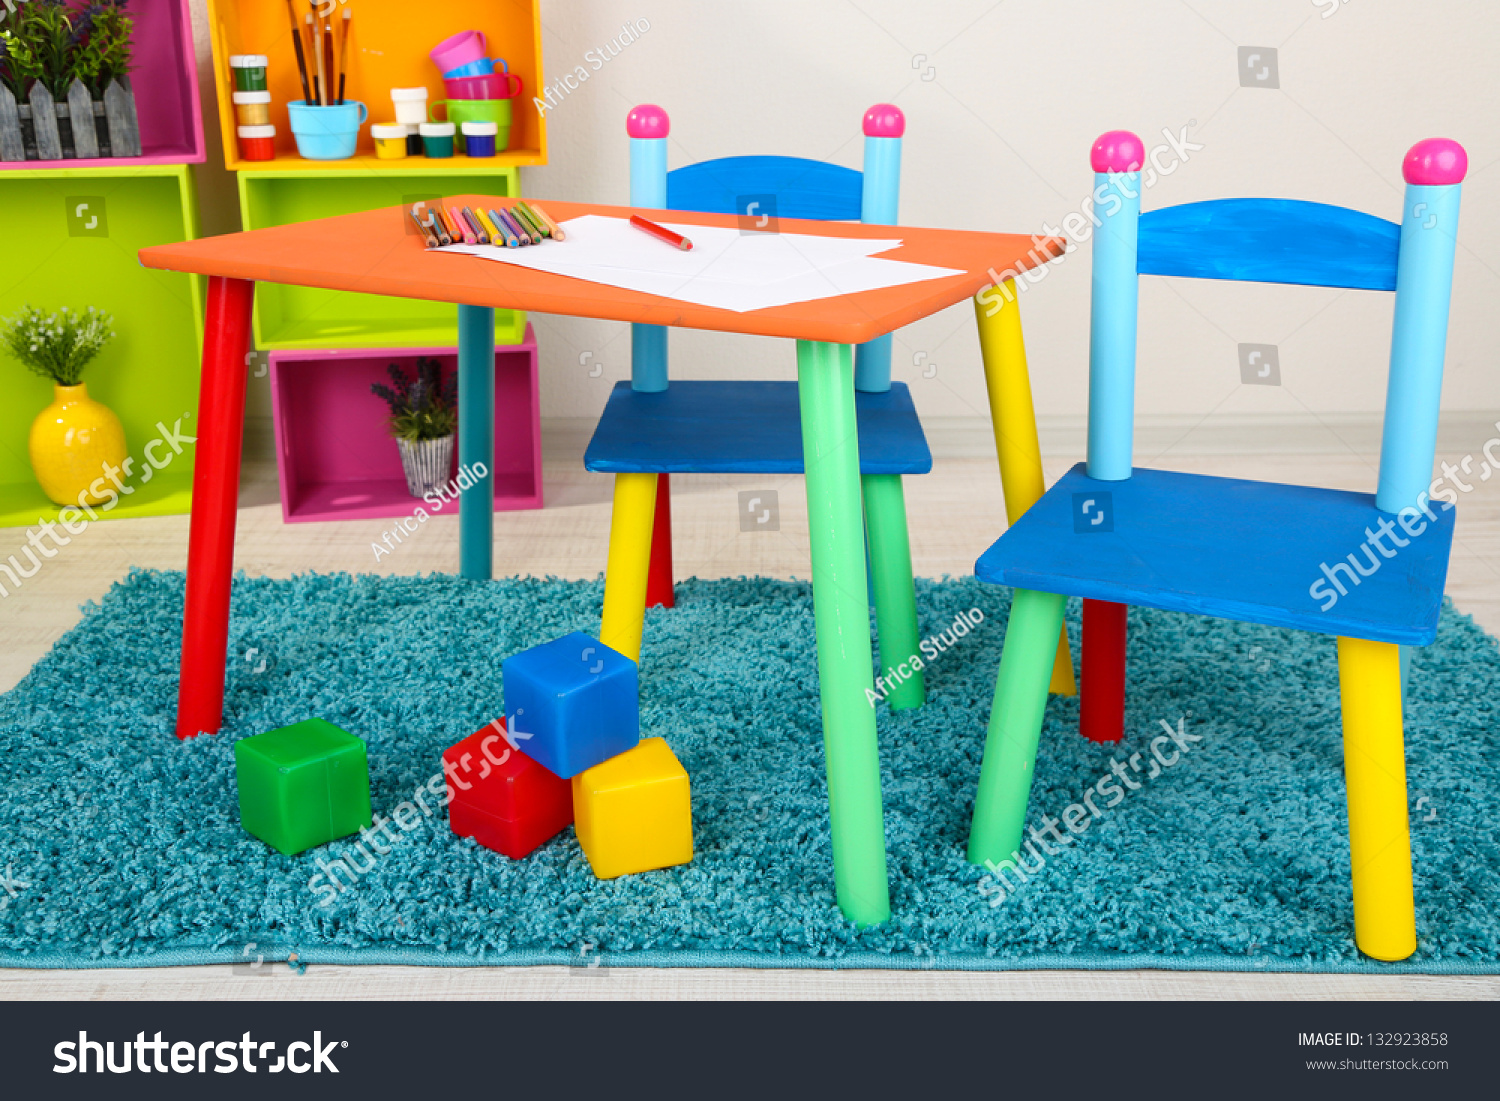 small colorful table chairs little kids stock photo 132923858 shutterstock. Black Bedroom Furniture Sets. Home Design Ideas